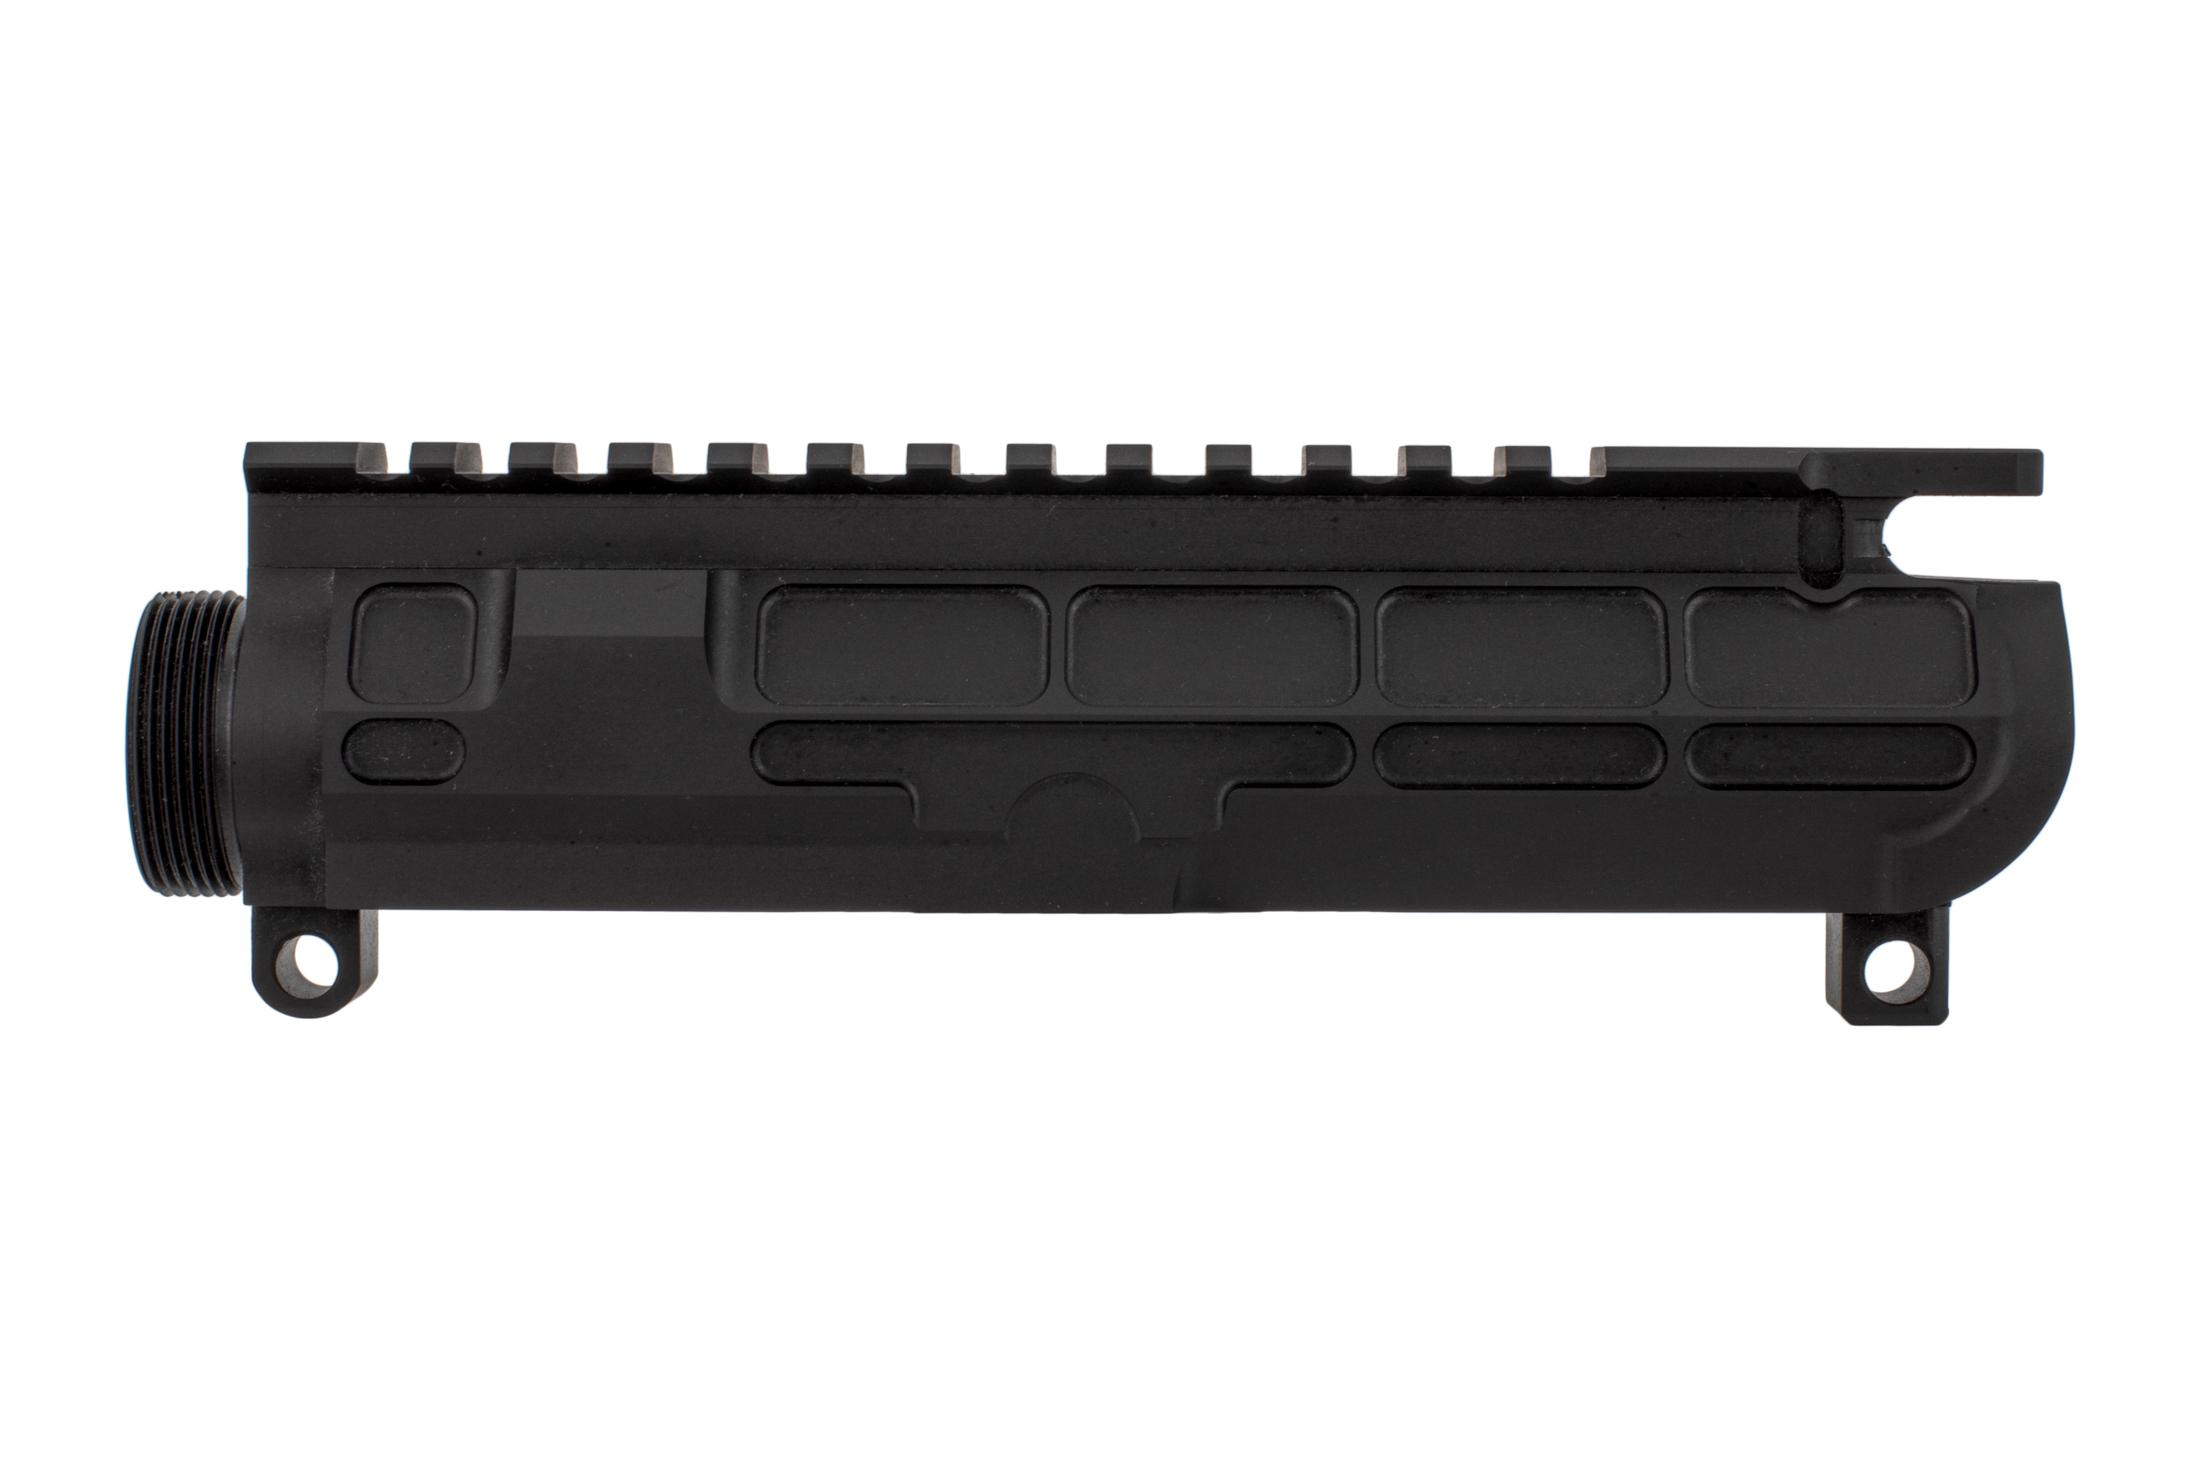 San Tan Tactical billet PILLAR upper for the AR-15 is compatible with standard MIL-SPEC receviers for enhanced compatibility